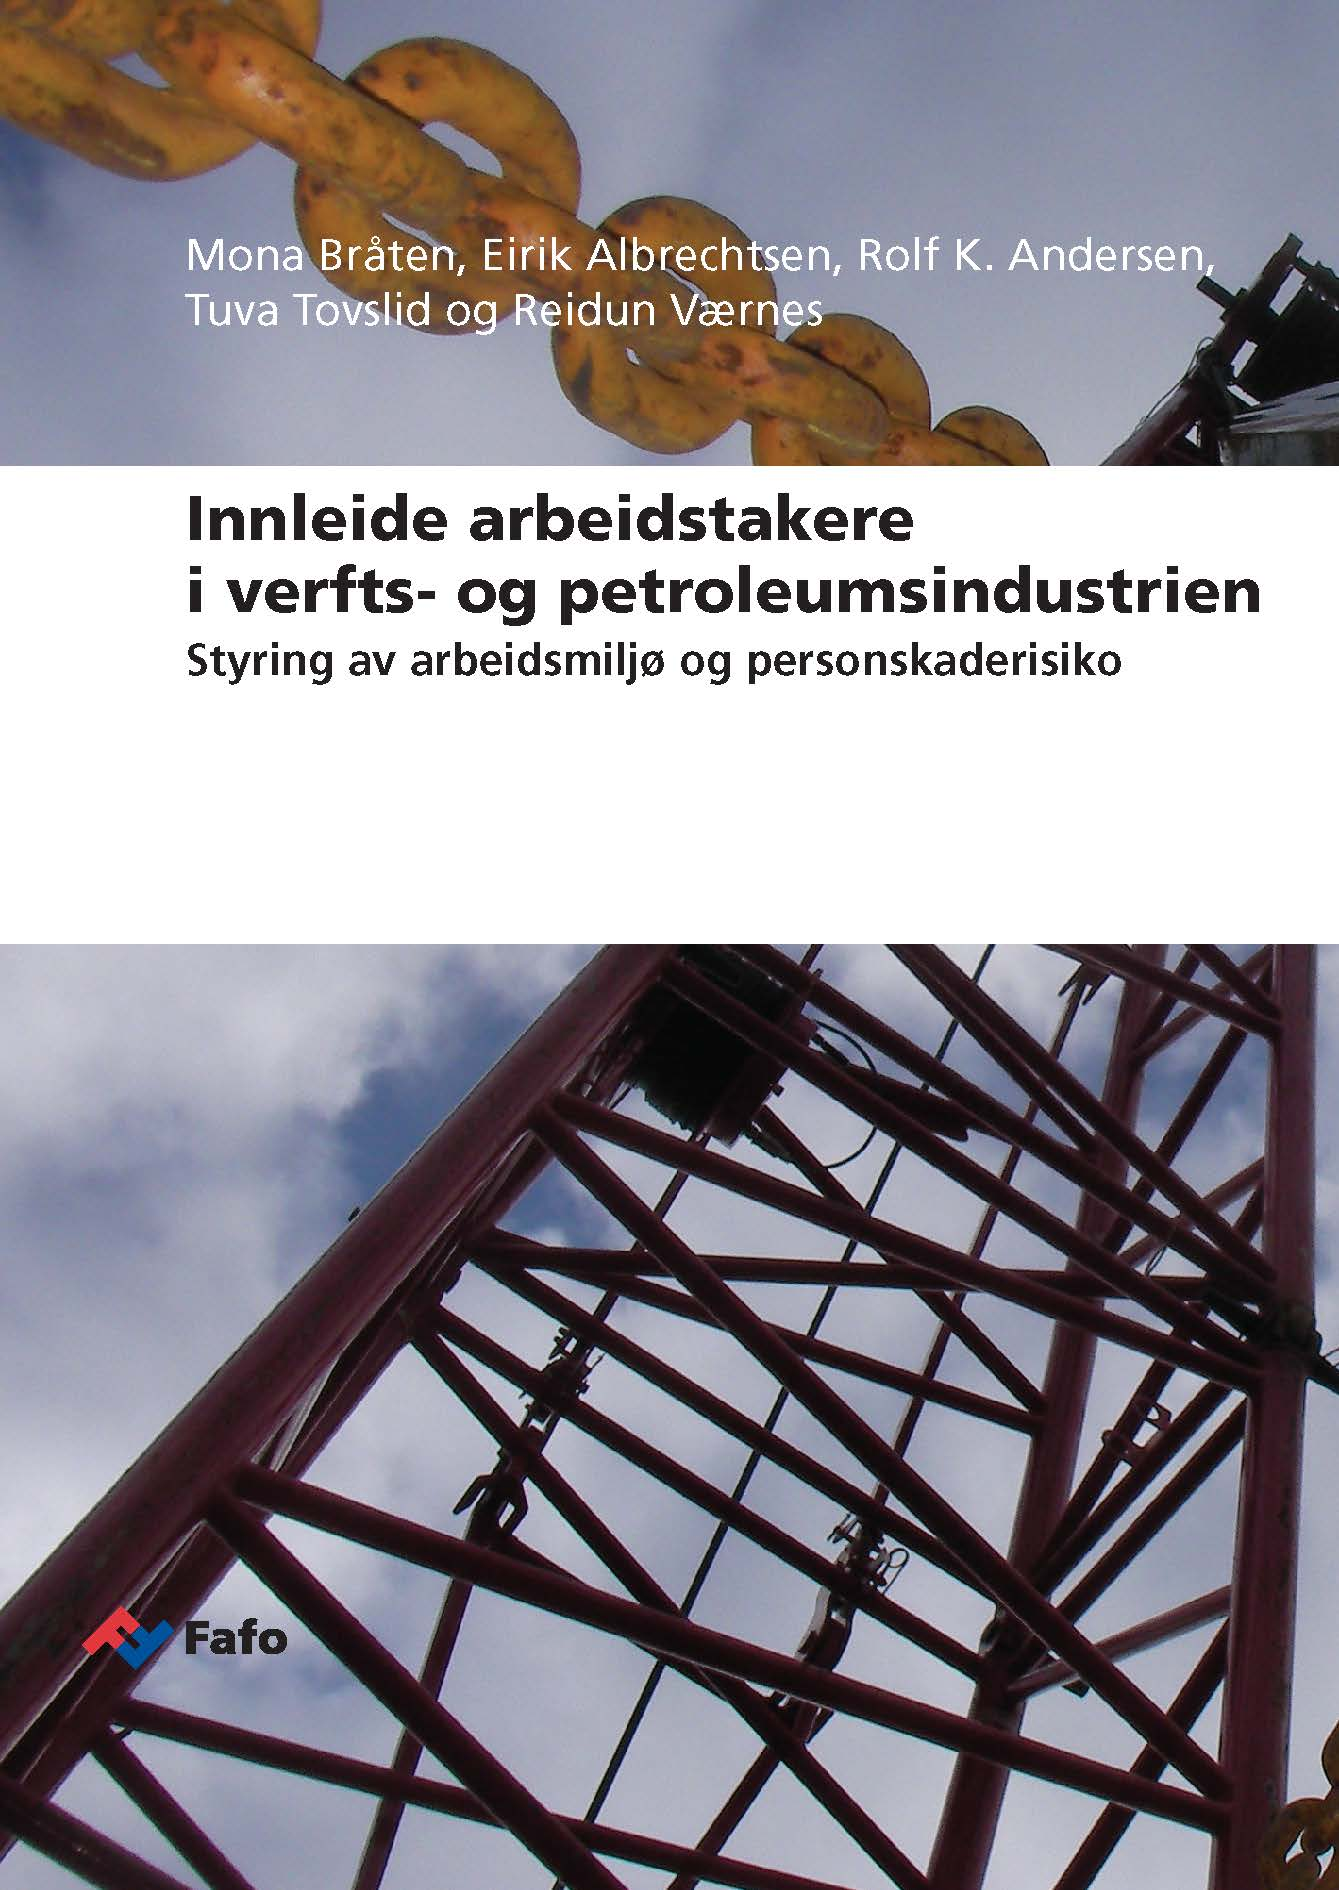 New Fafo report on contract workers in shipbuillding and petroleum industries